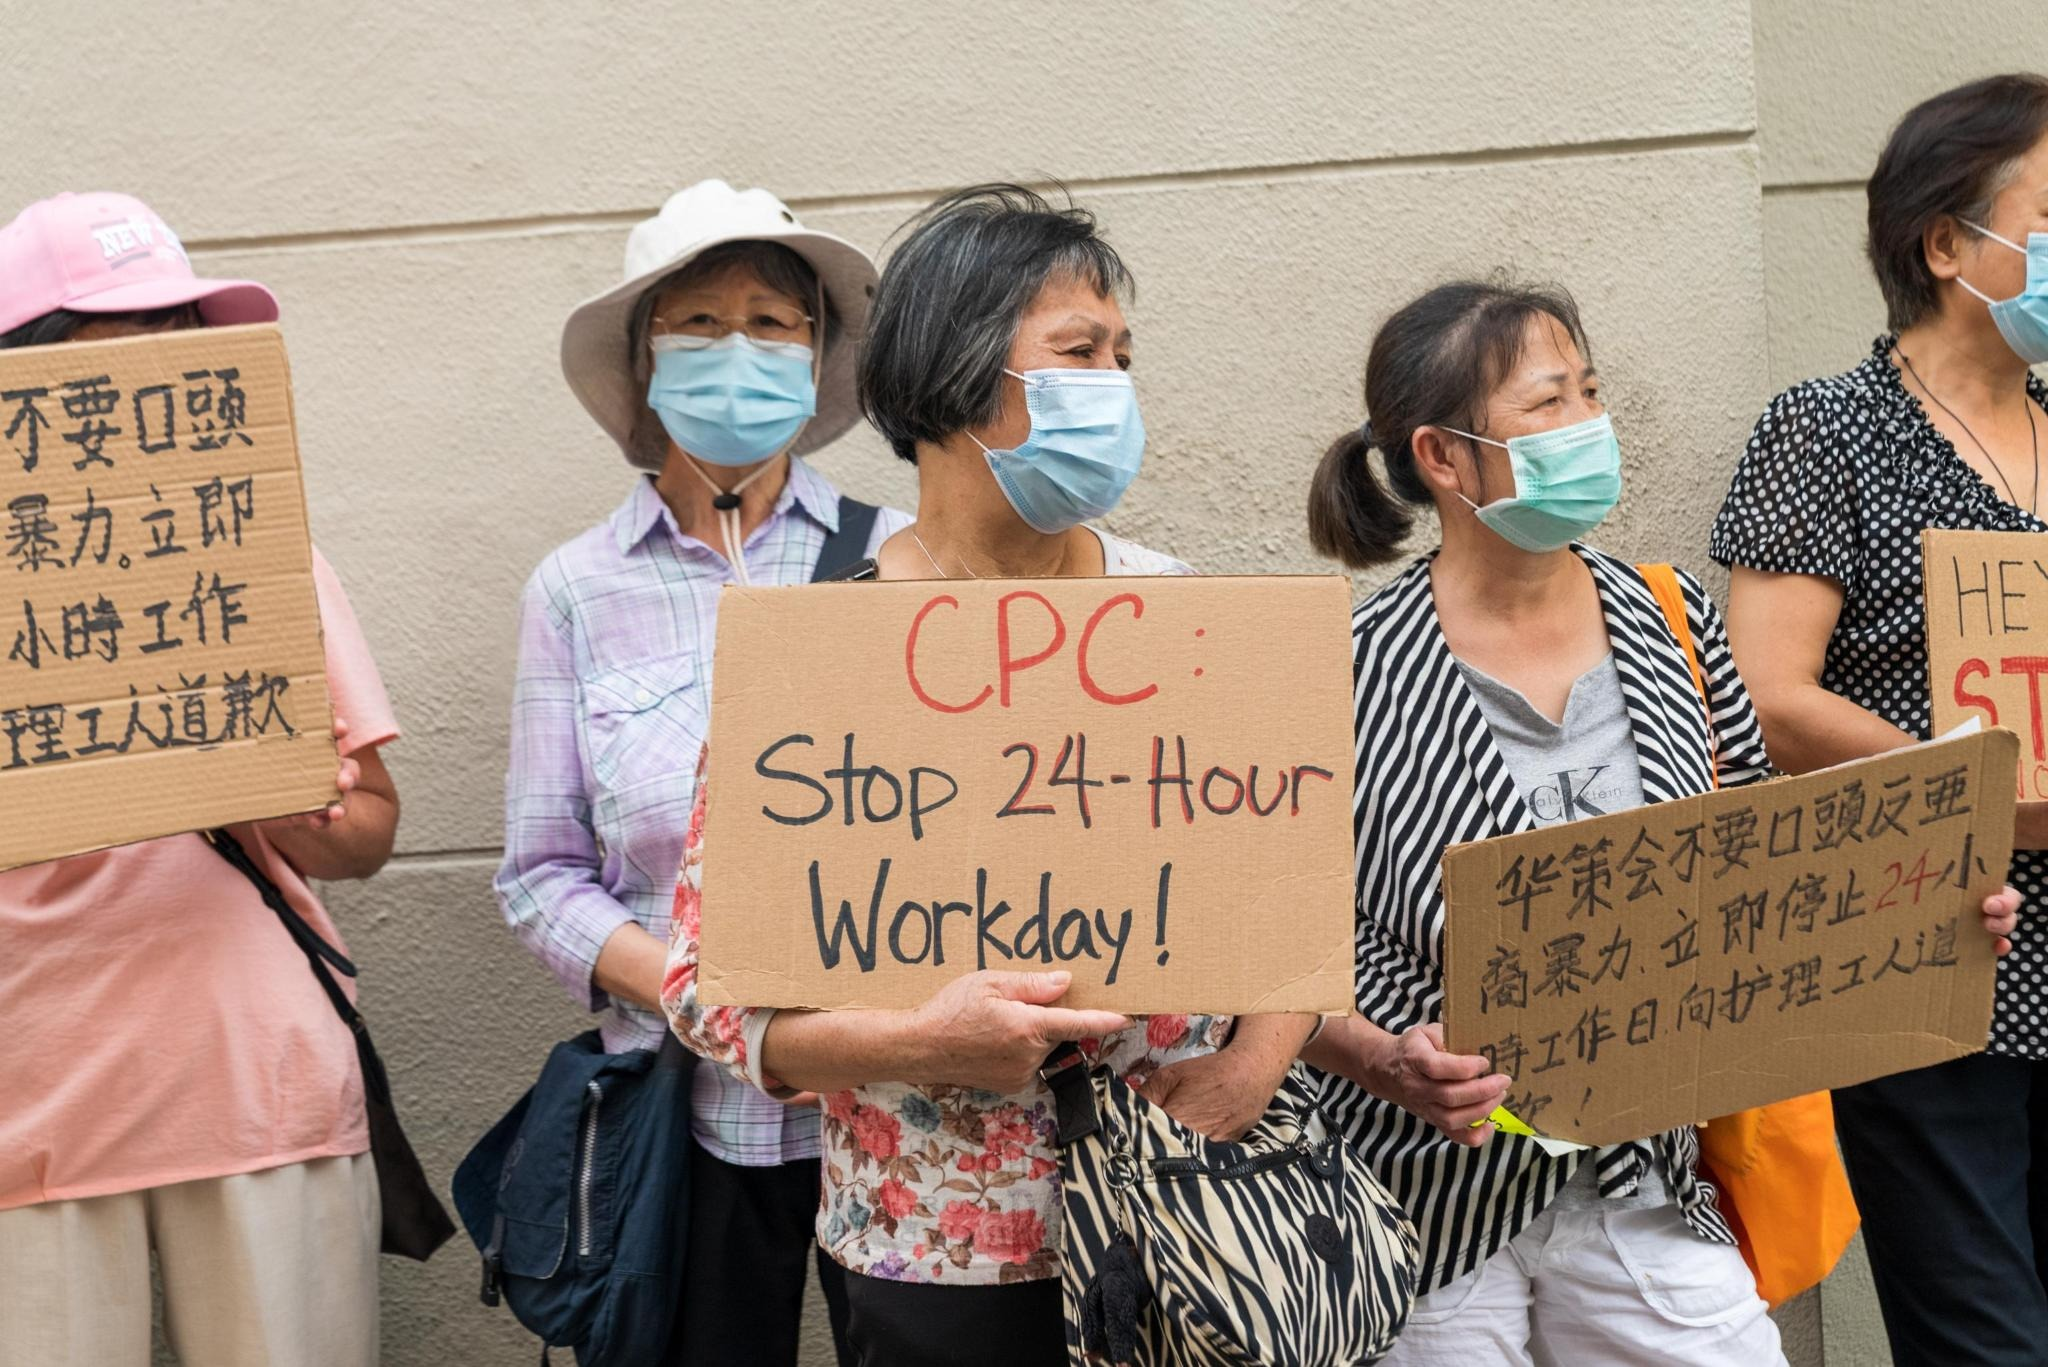 Chinese Planning Council home health attendants say that receiving only 13 hours of pay for 24-hour shifts is unfair and detrimental to them.